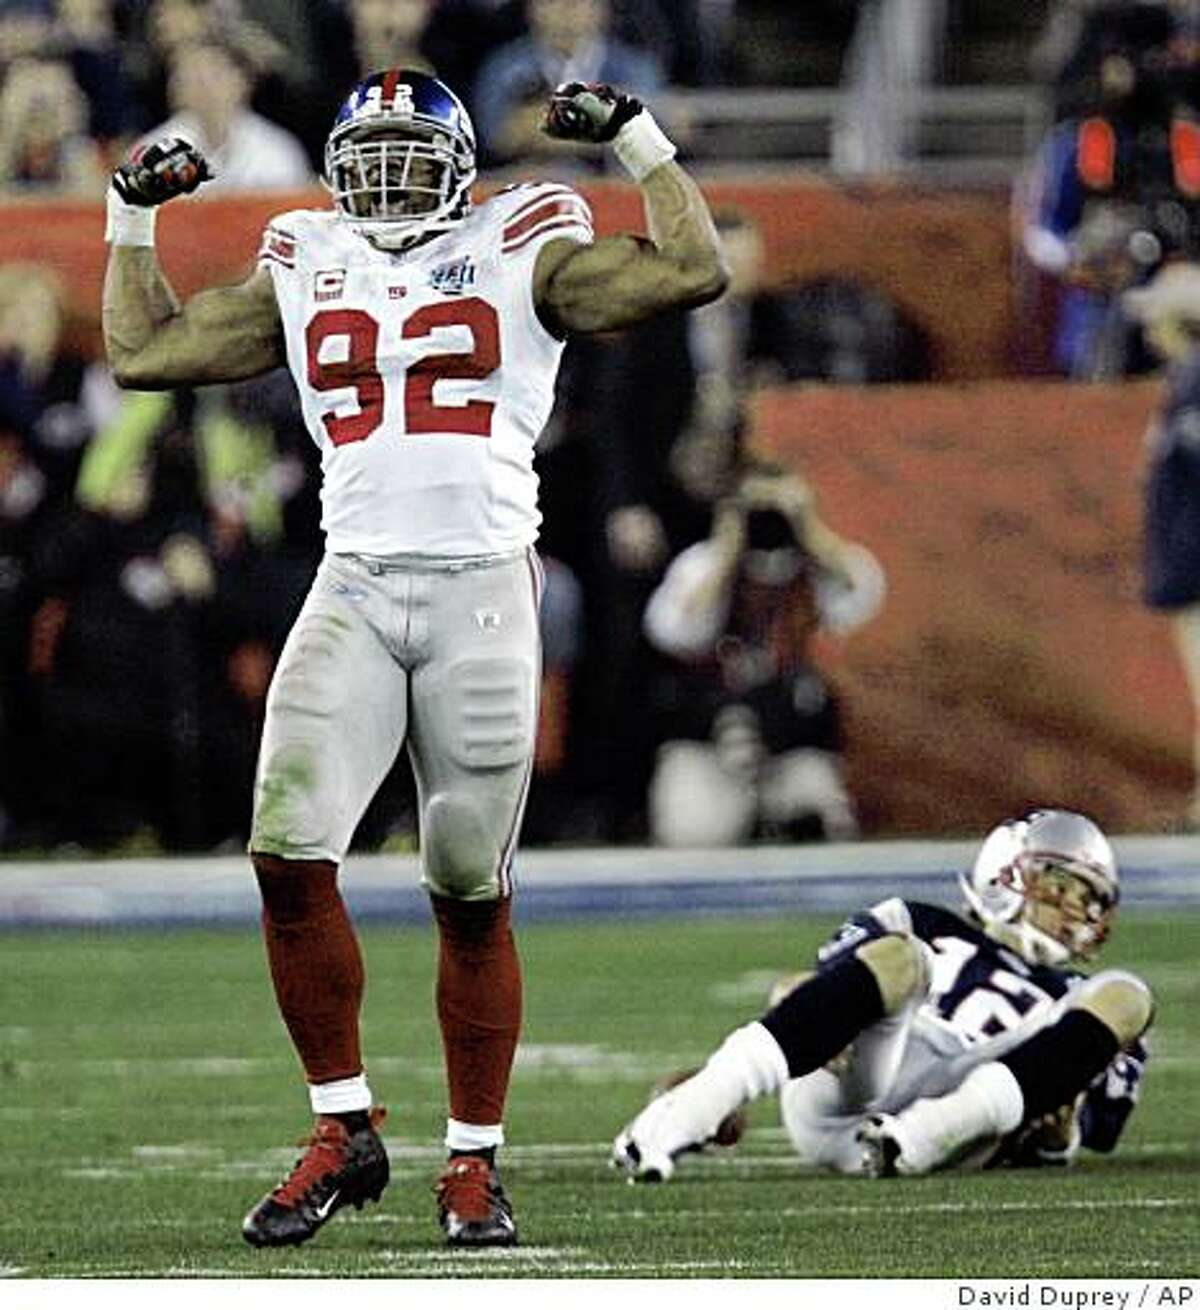 ** FILE ** In this Feb. 3, 2008 file photo, New York Giants defensive end Michael Strahan (92) reacts after sacking New England Patriots quarterback Tom Brady (12) in the third quarter during the Super Bowl XLII football game at University of Phoenix Stadium in Glendale, Ariz. Seven-time Pro Bowl defensive end Michael Strahan is retiring after a 15-year career, capped by a Super Bowl title with the New York Giants in February. The 36-year-old Strahan, the NFL's active leader in sacks, informed the Giants on Monday June 9, 2008. (AP Photo/David Duprey, File)